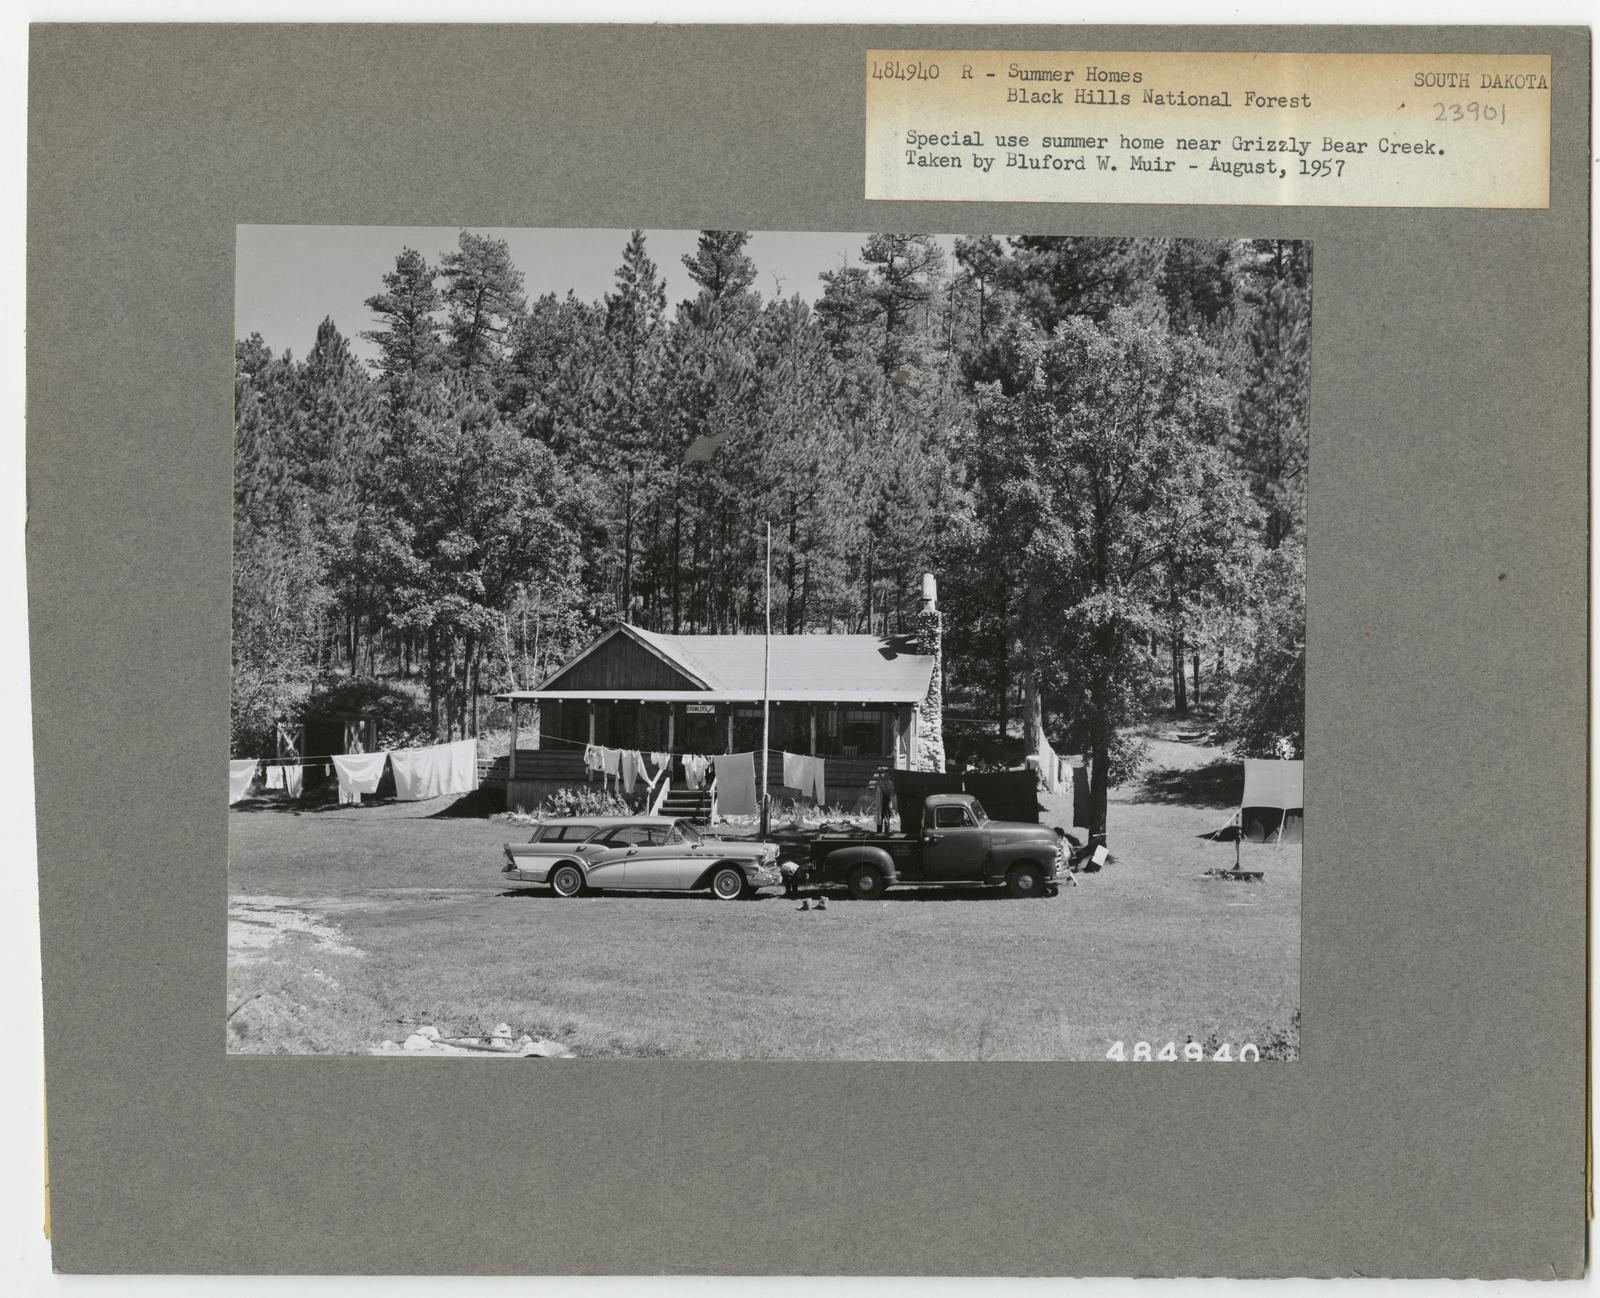 Resorts and Other Dwellings - South Dakota